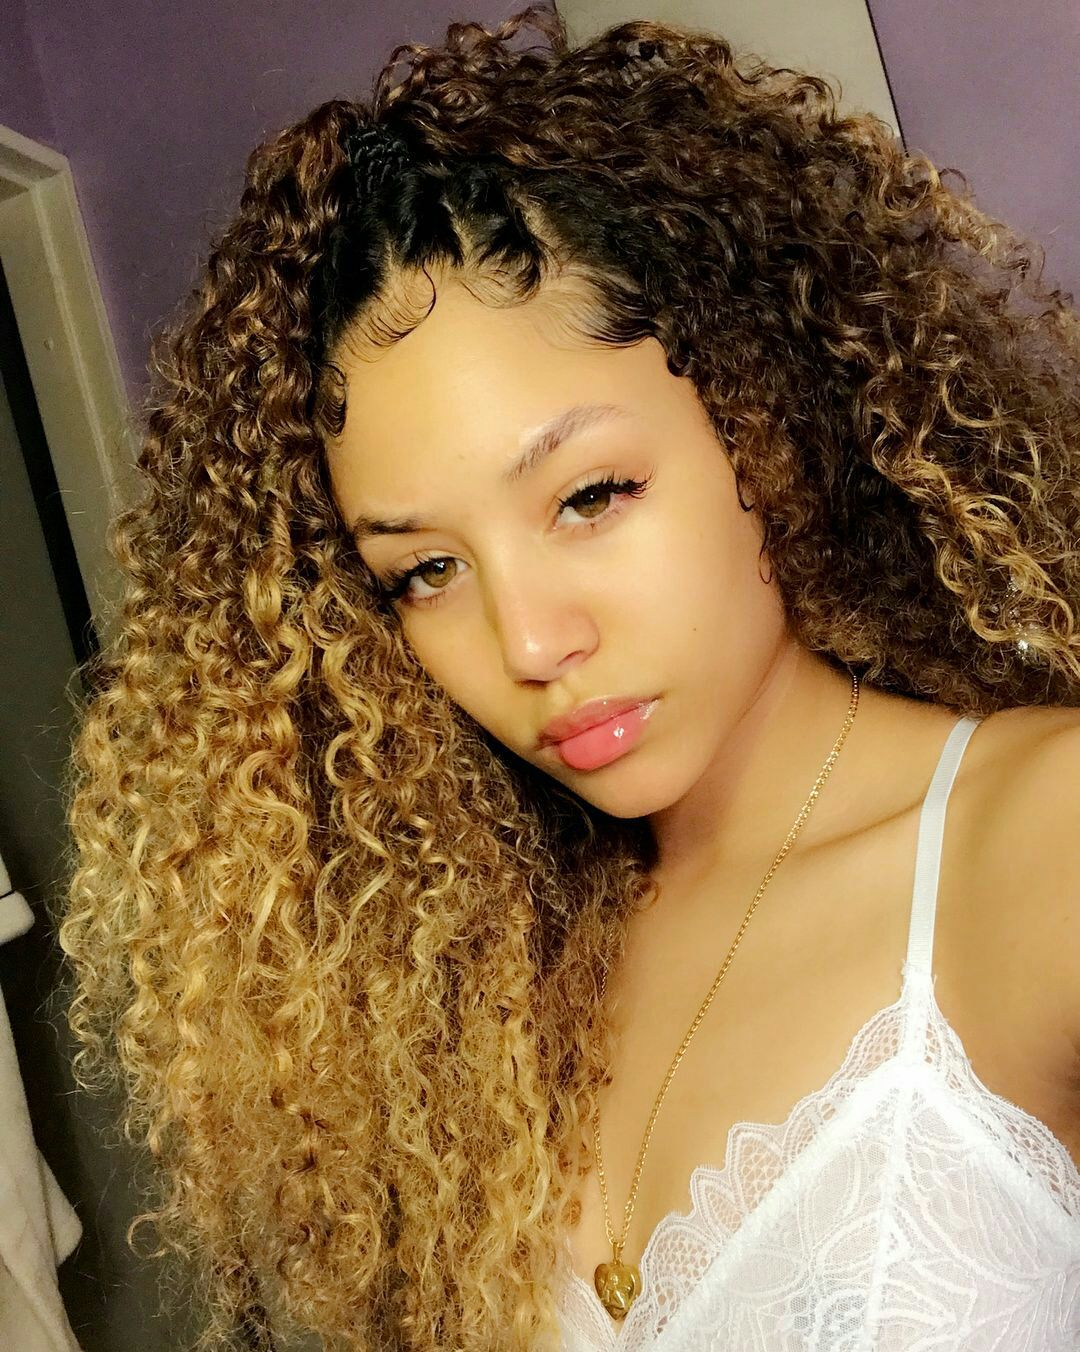 Lil Attitude A Nba Youngboy Story In 2019 Cute Girls Curly Hair